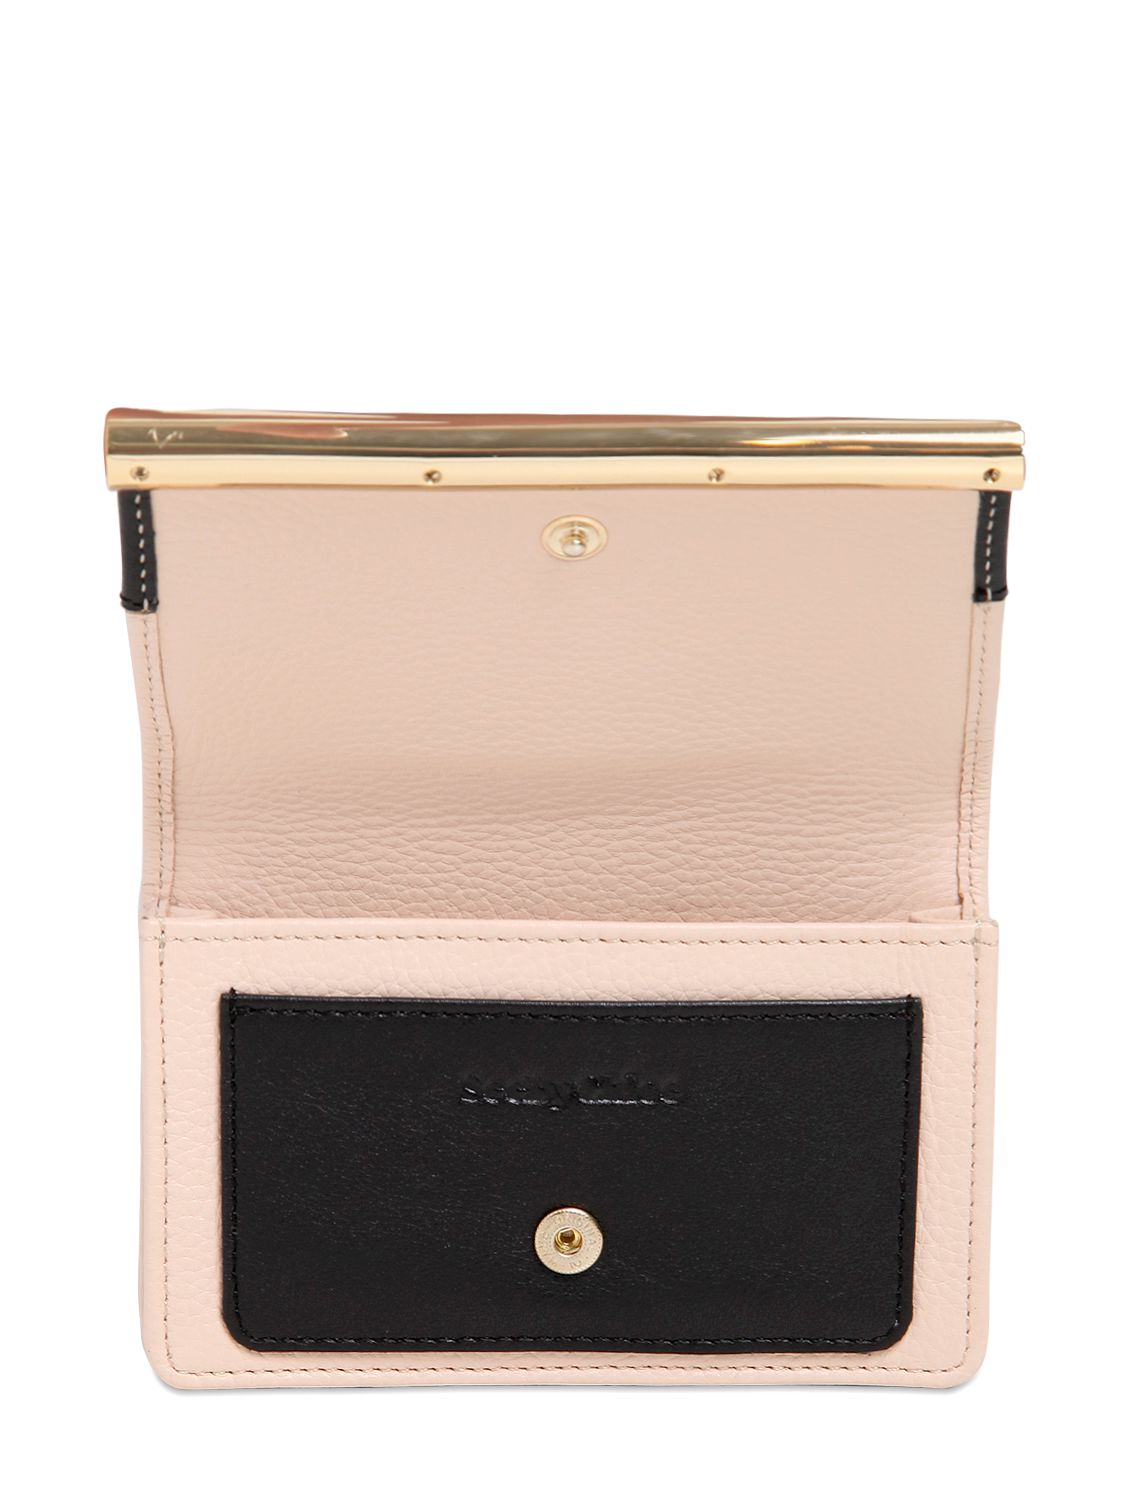 Lyst - See By Chloé Two Tone Leather Business Card Holder in Natural